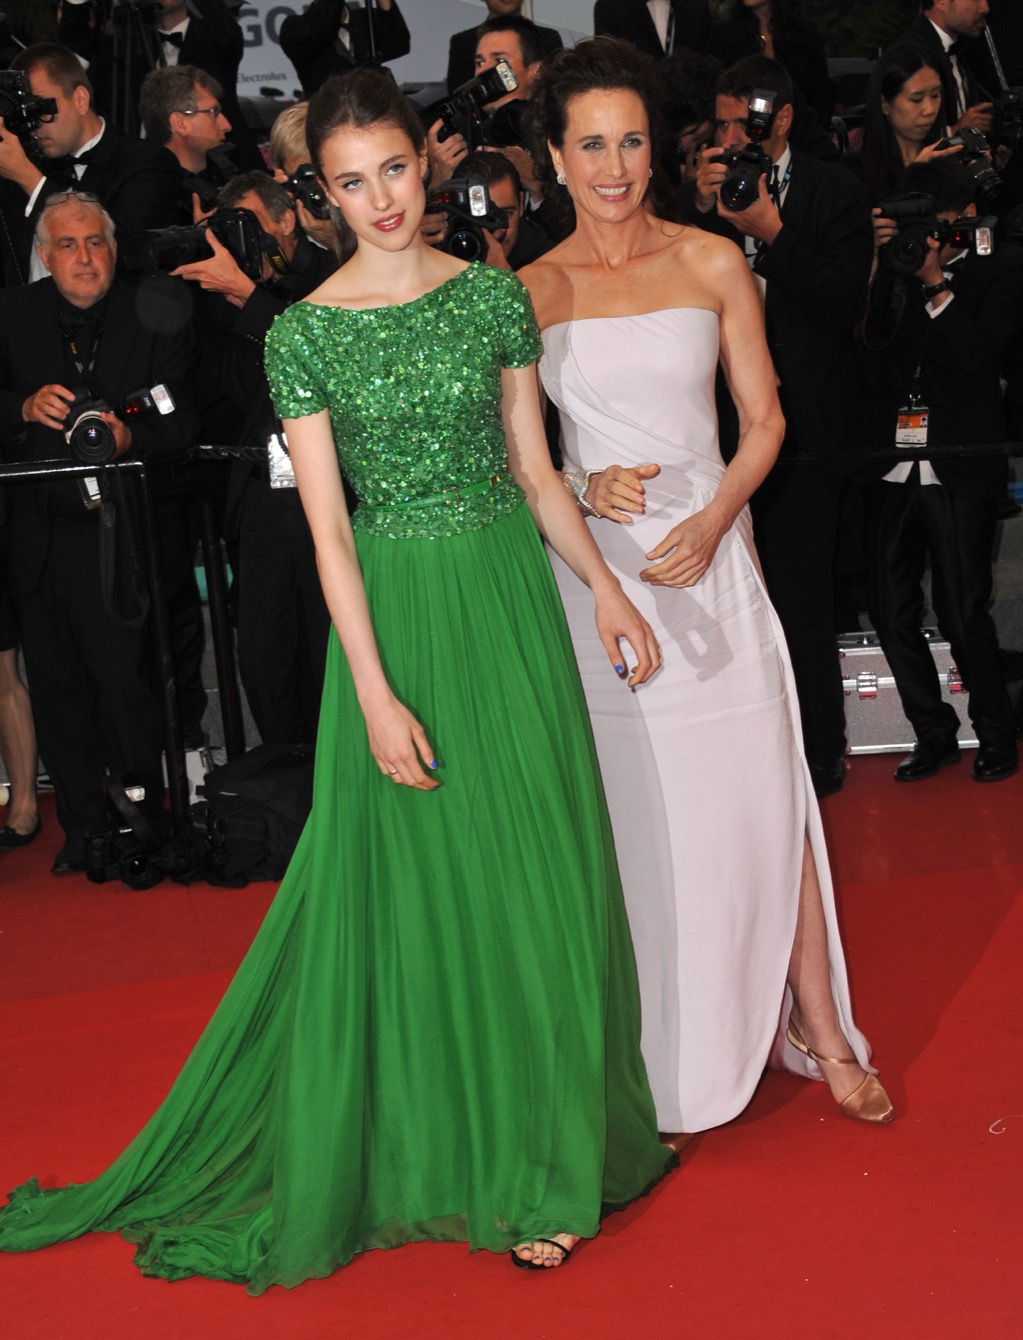 Margaret Qualley and Andie Macdowell